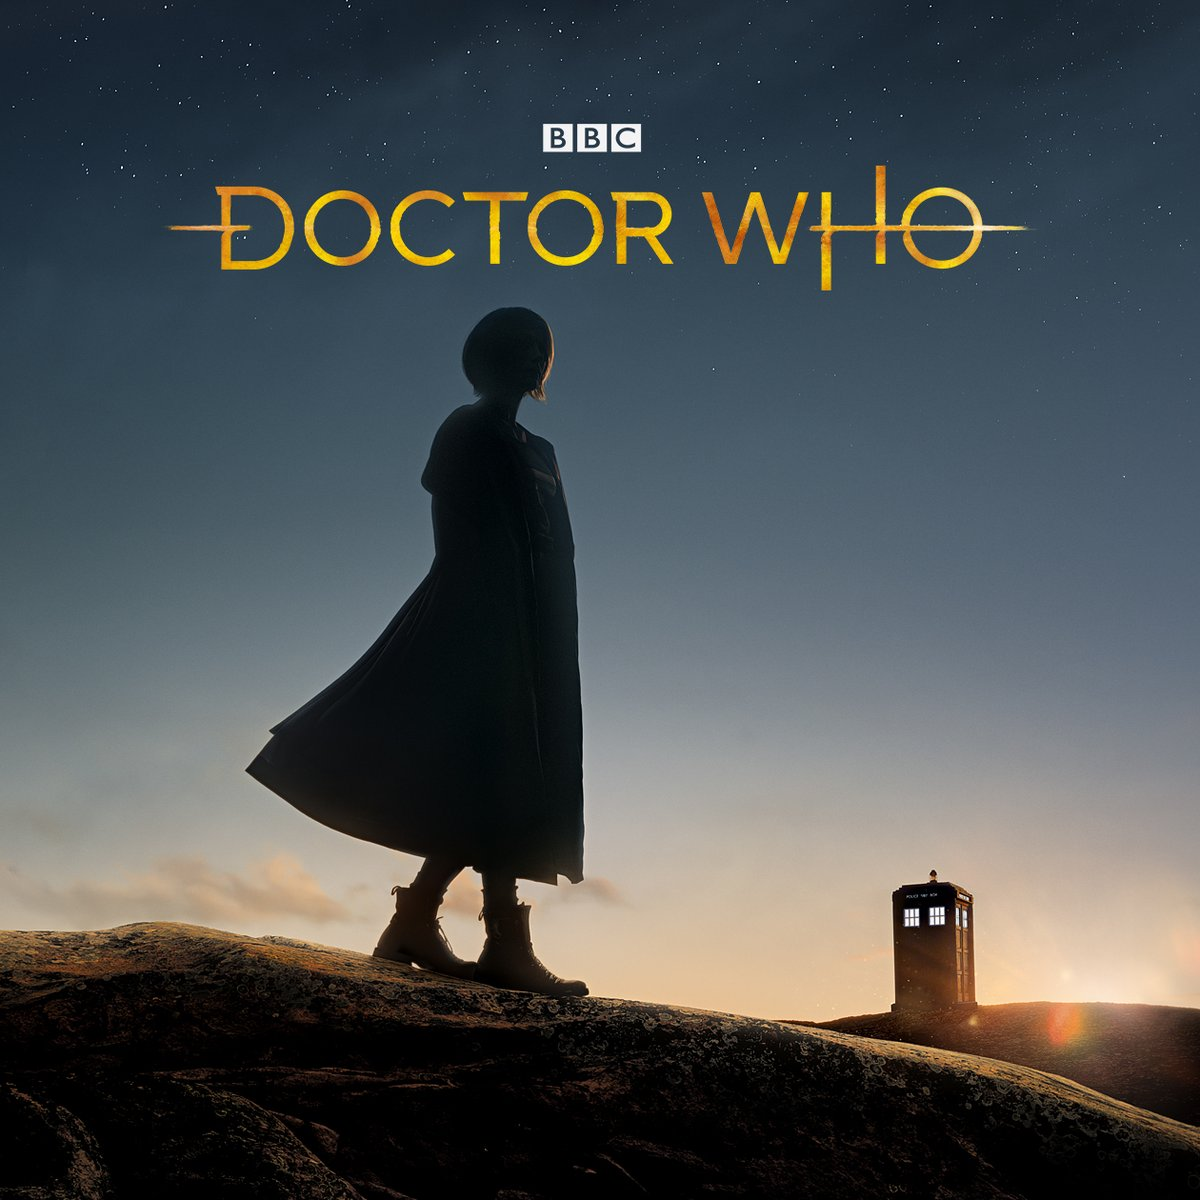 New Doctor Who Logo And Insignia Revealed!